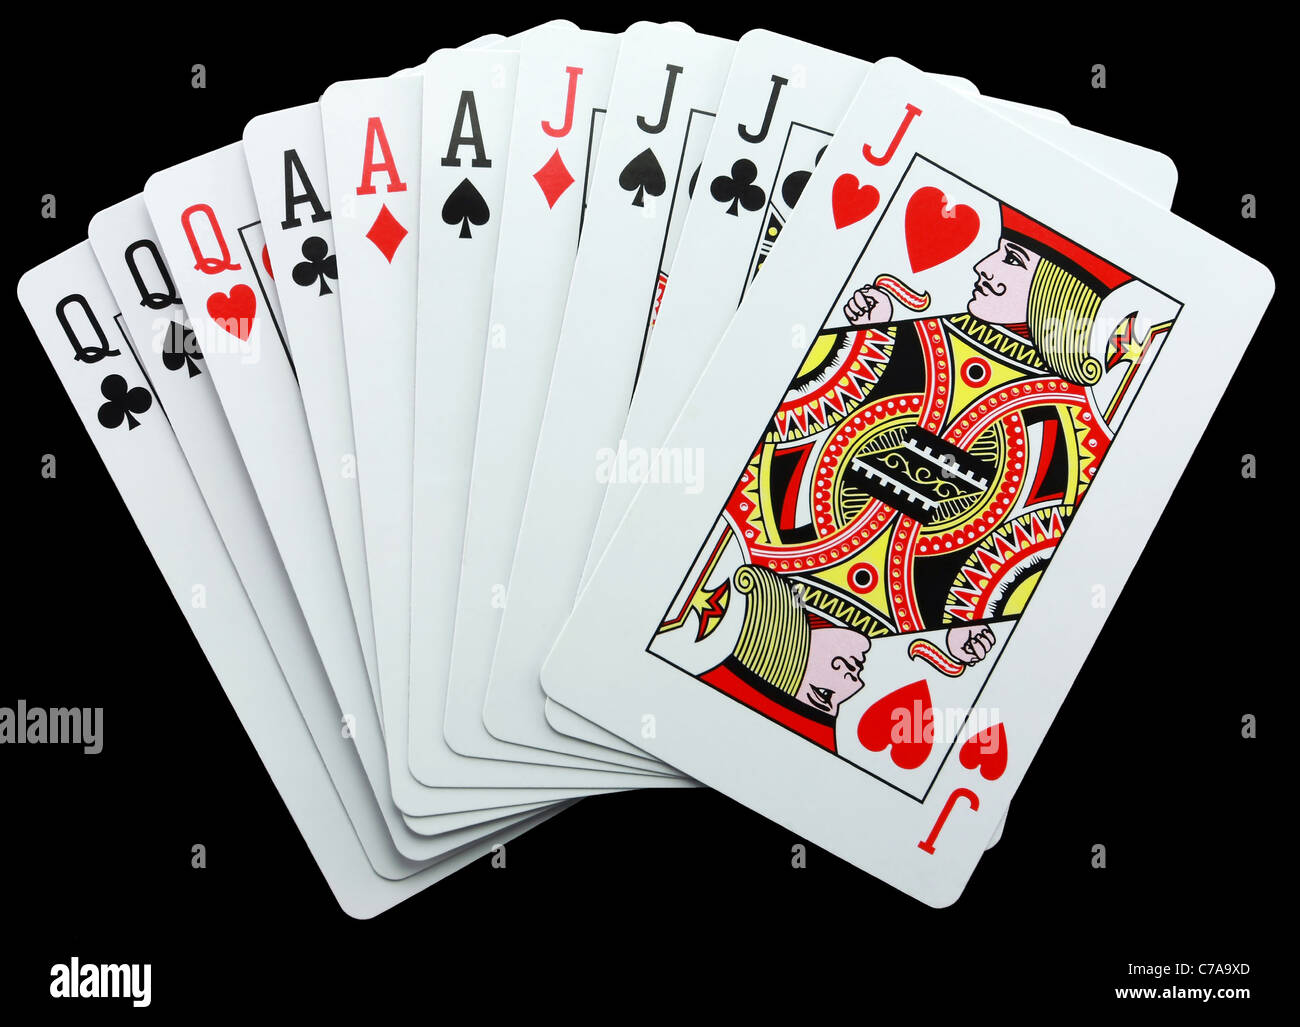 Gin Rummy High Resolution Stock Photography And Images Alamy,Pork Chops In The Oven Temp